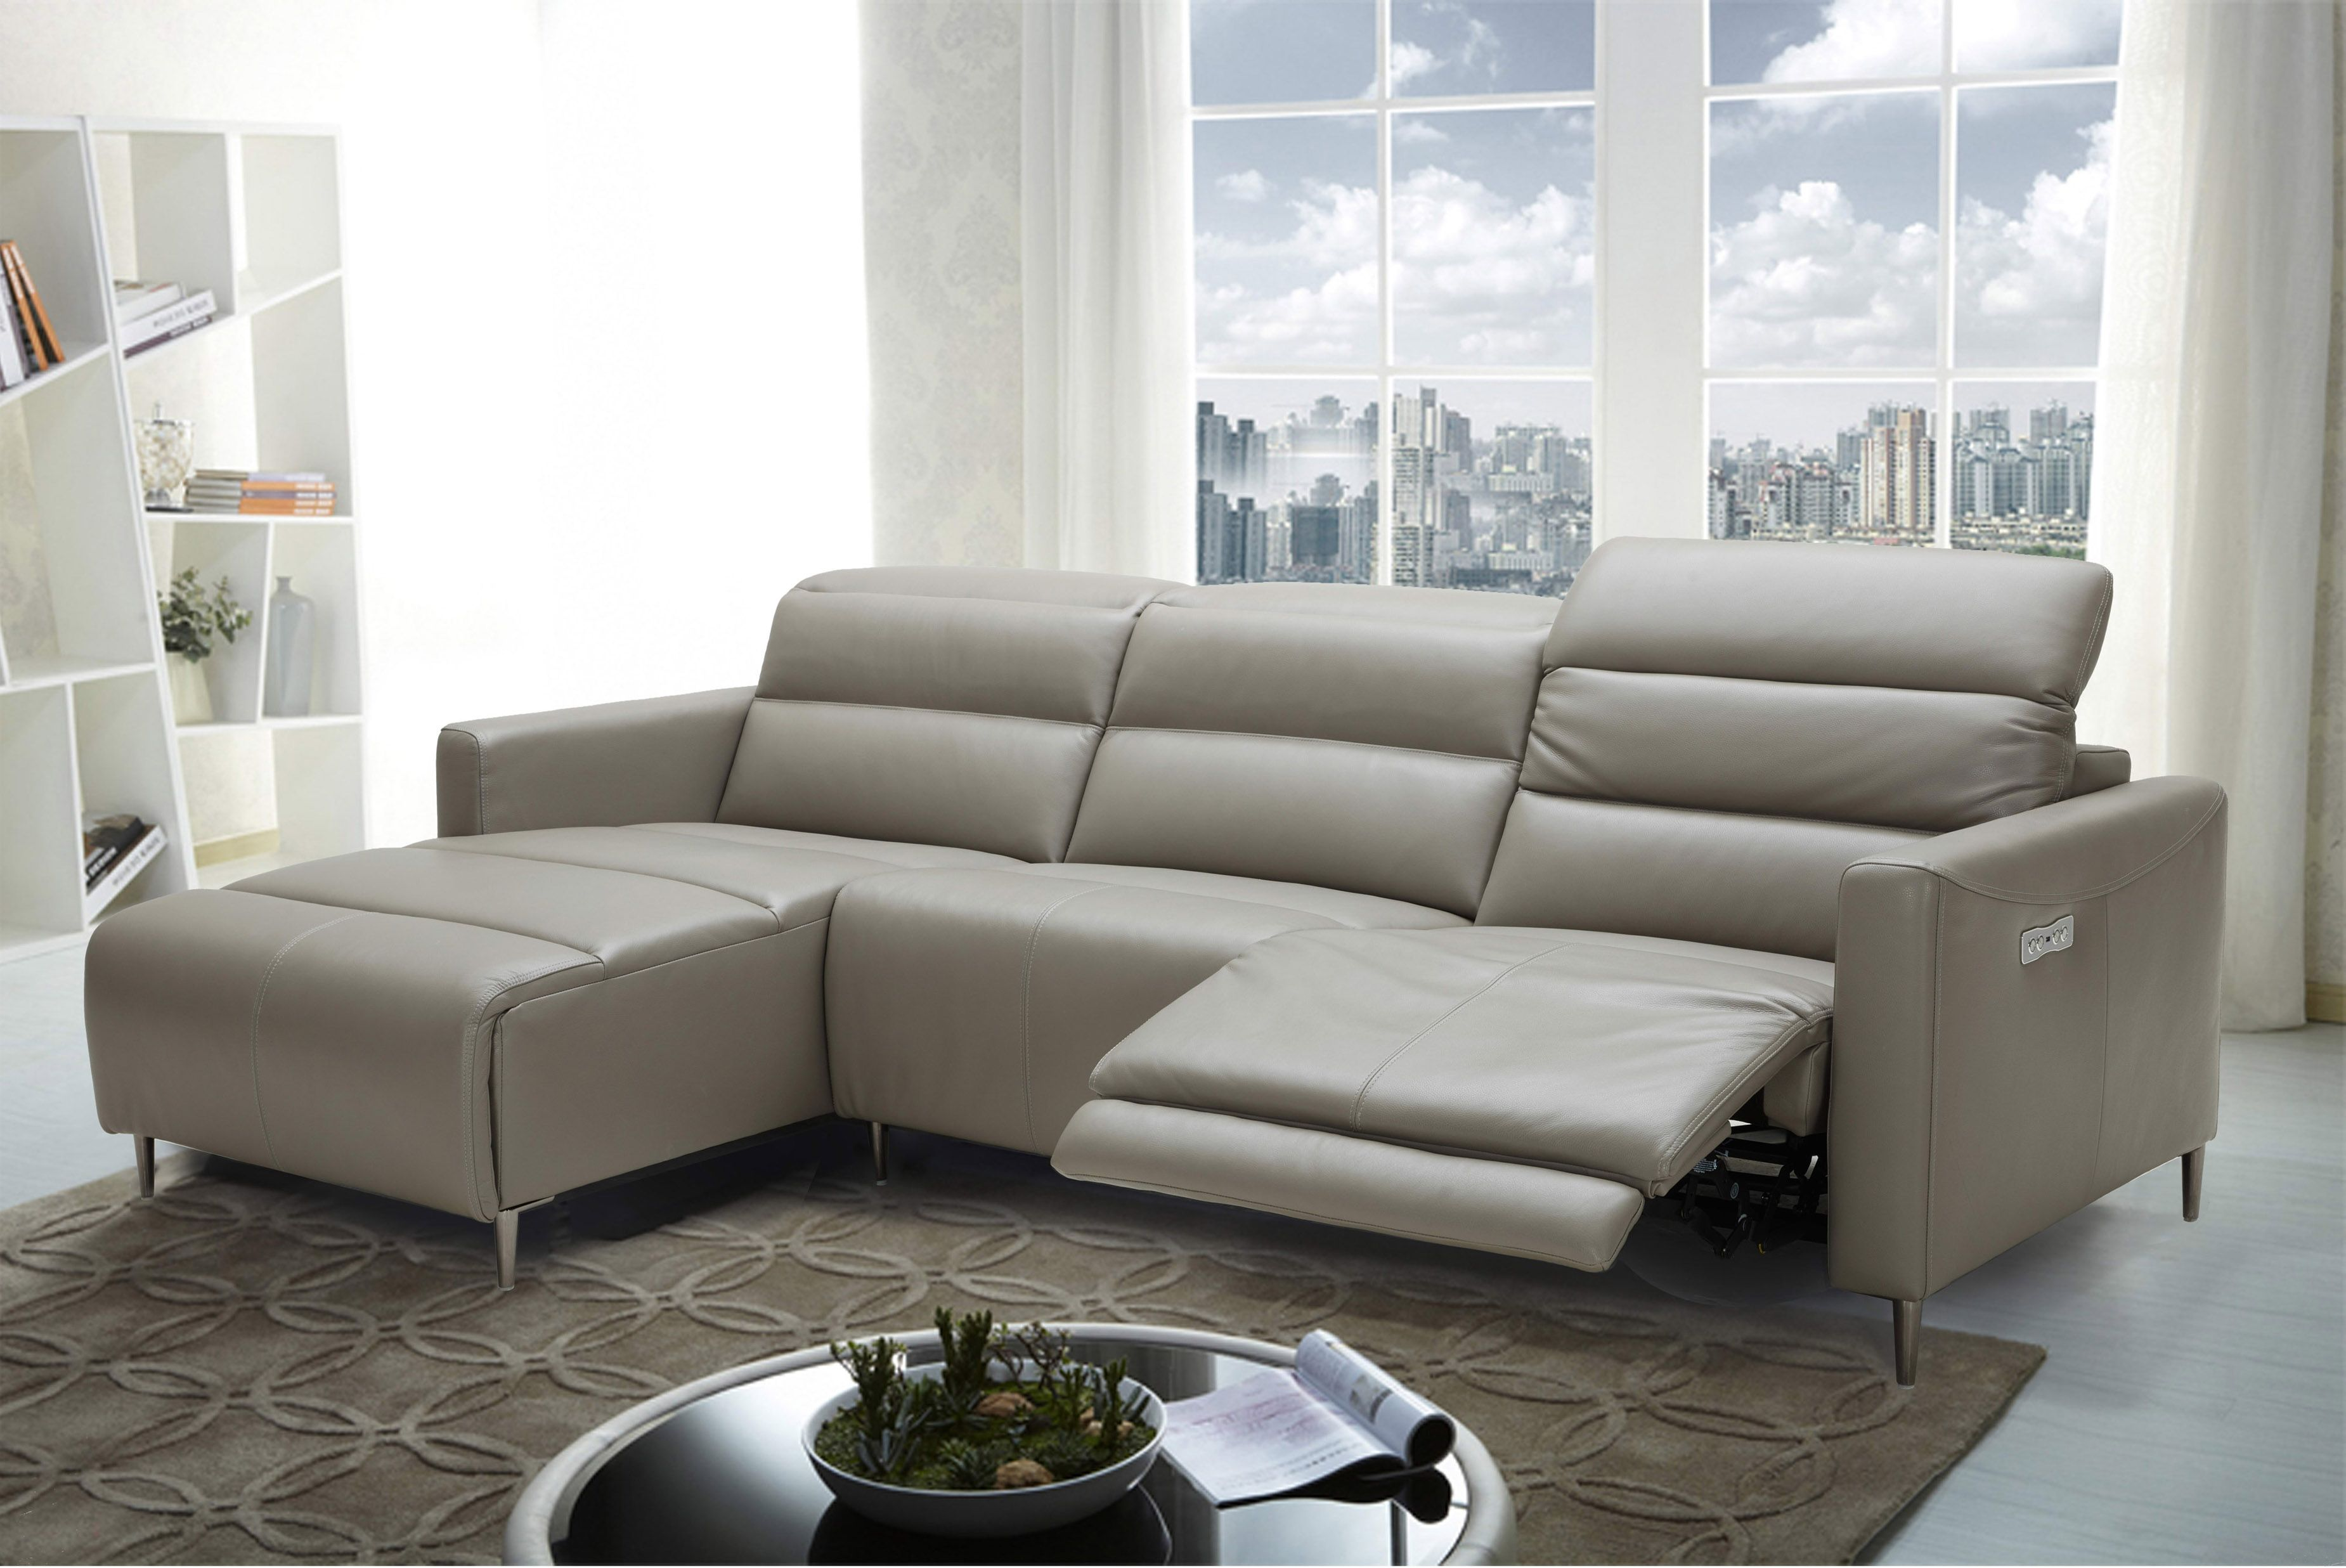 Exclusive Italian Leather Living Room Furniture Leather Living